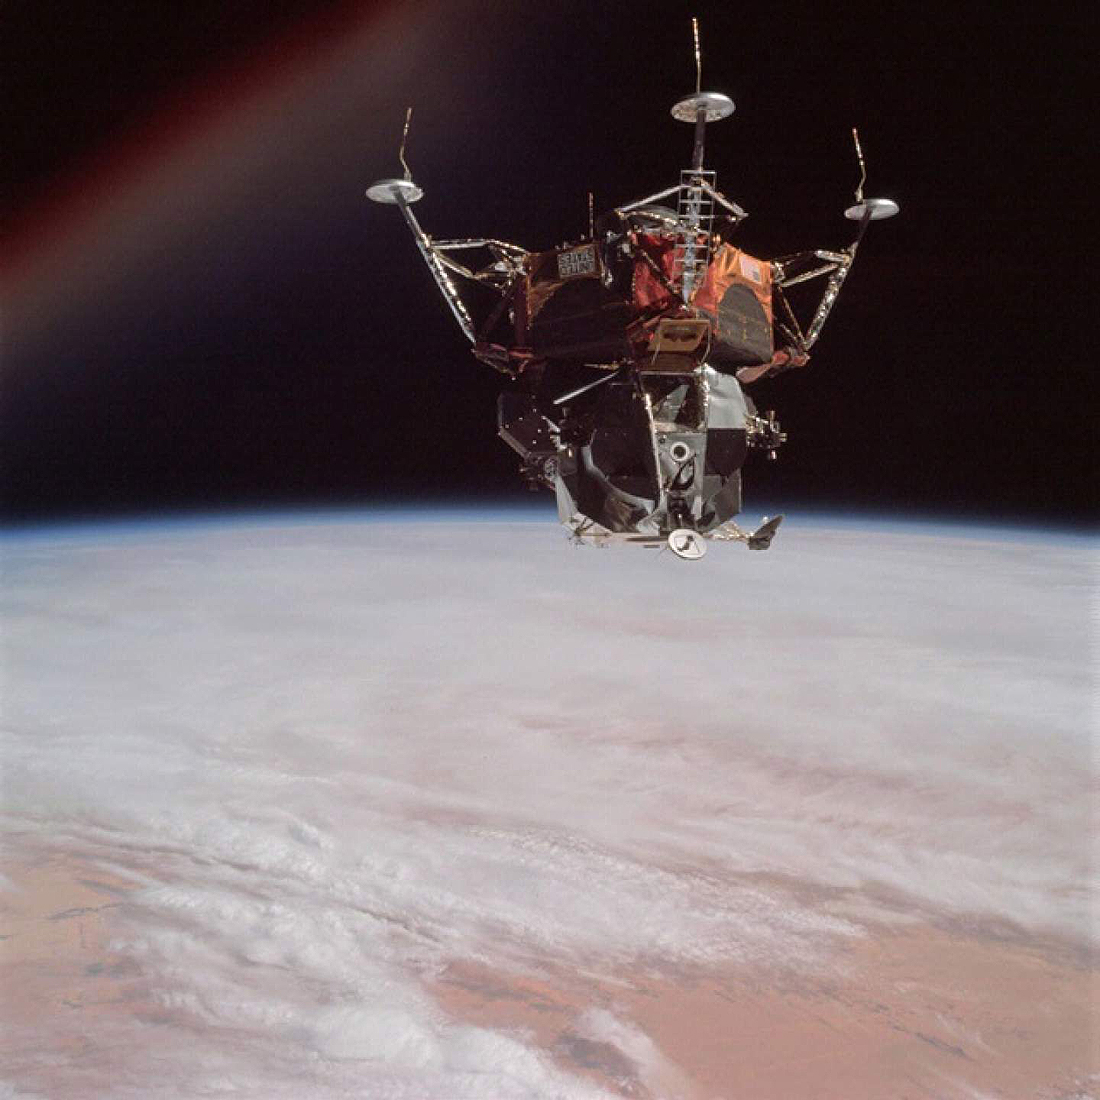 Apollo 9 Lunar module Spider